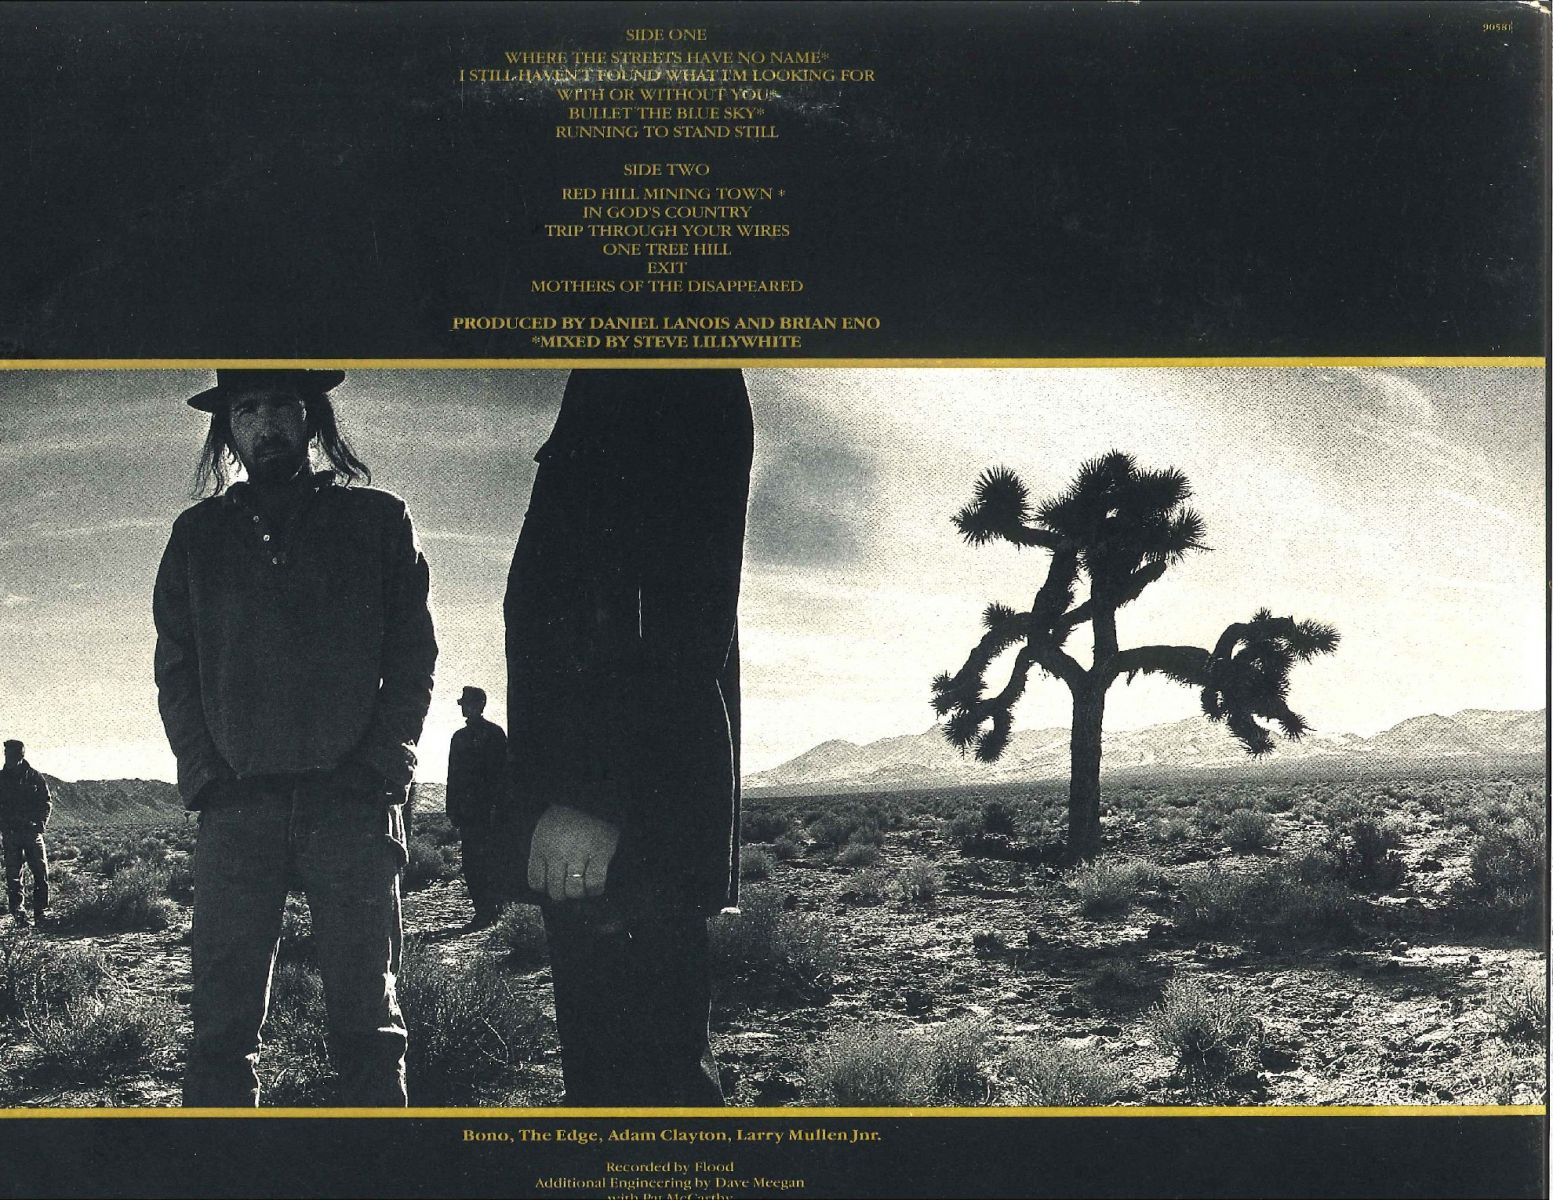 Joshua Tree (back of the album)